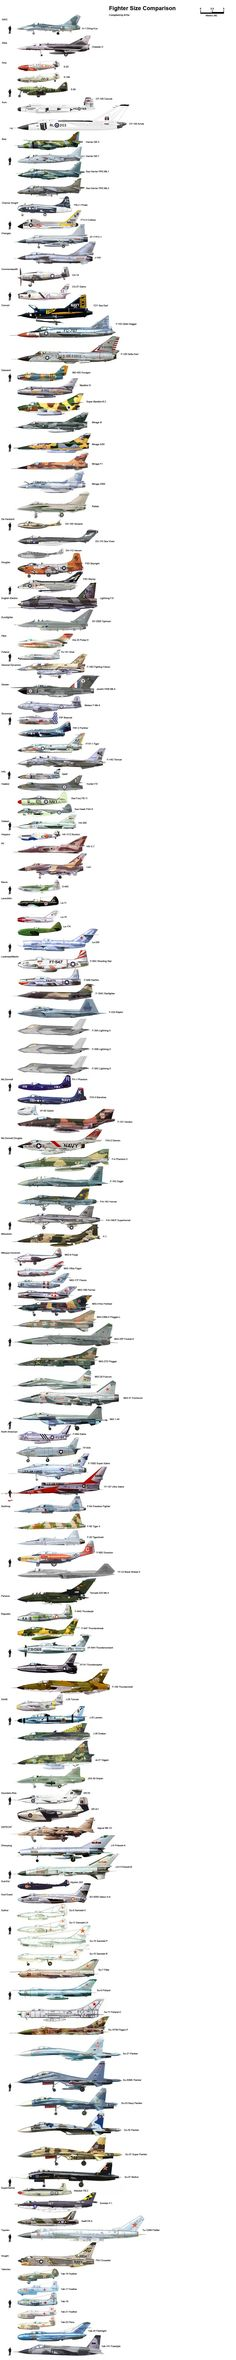 Patterns of International Plane's; Size & Scale Comparisons…